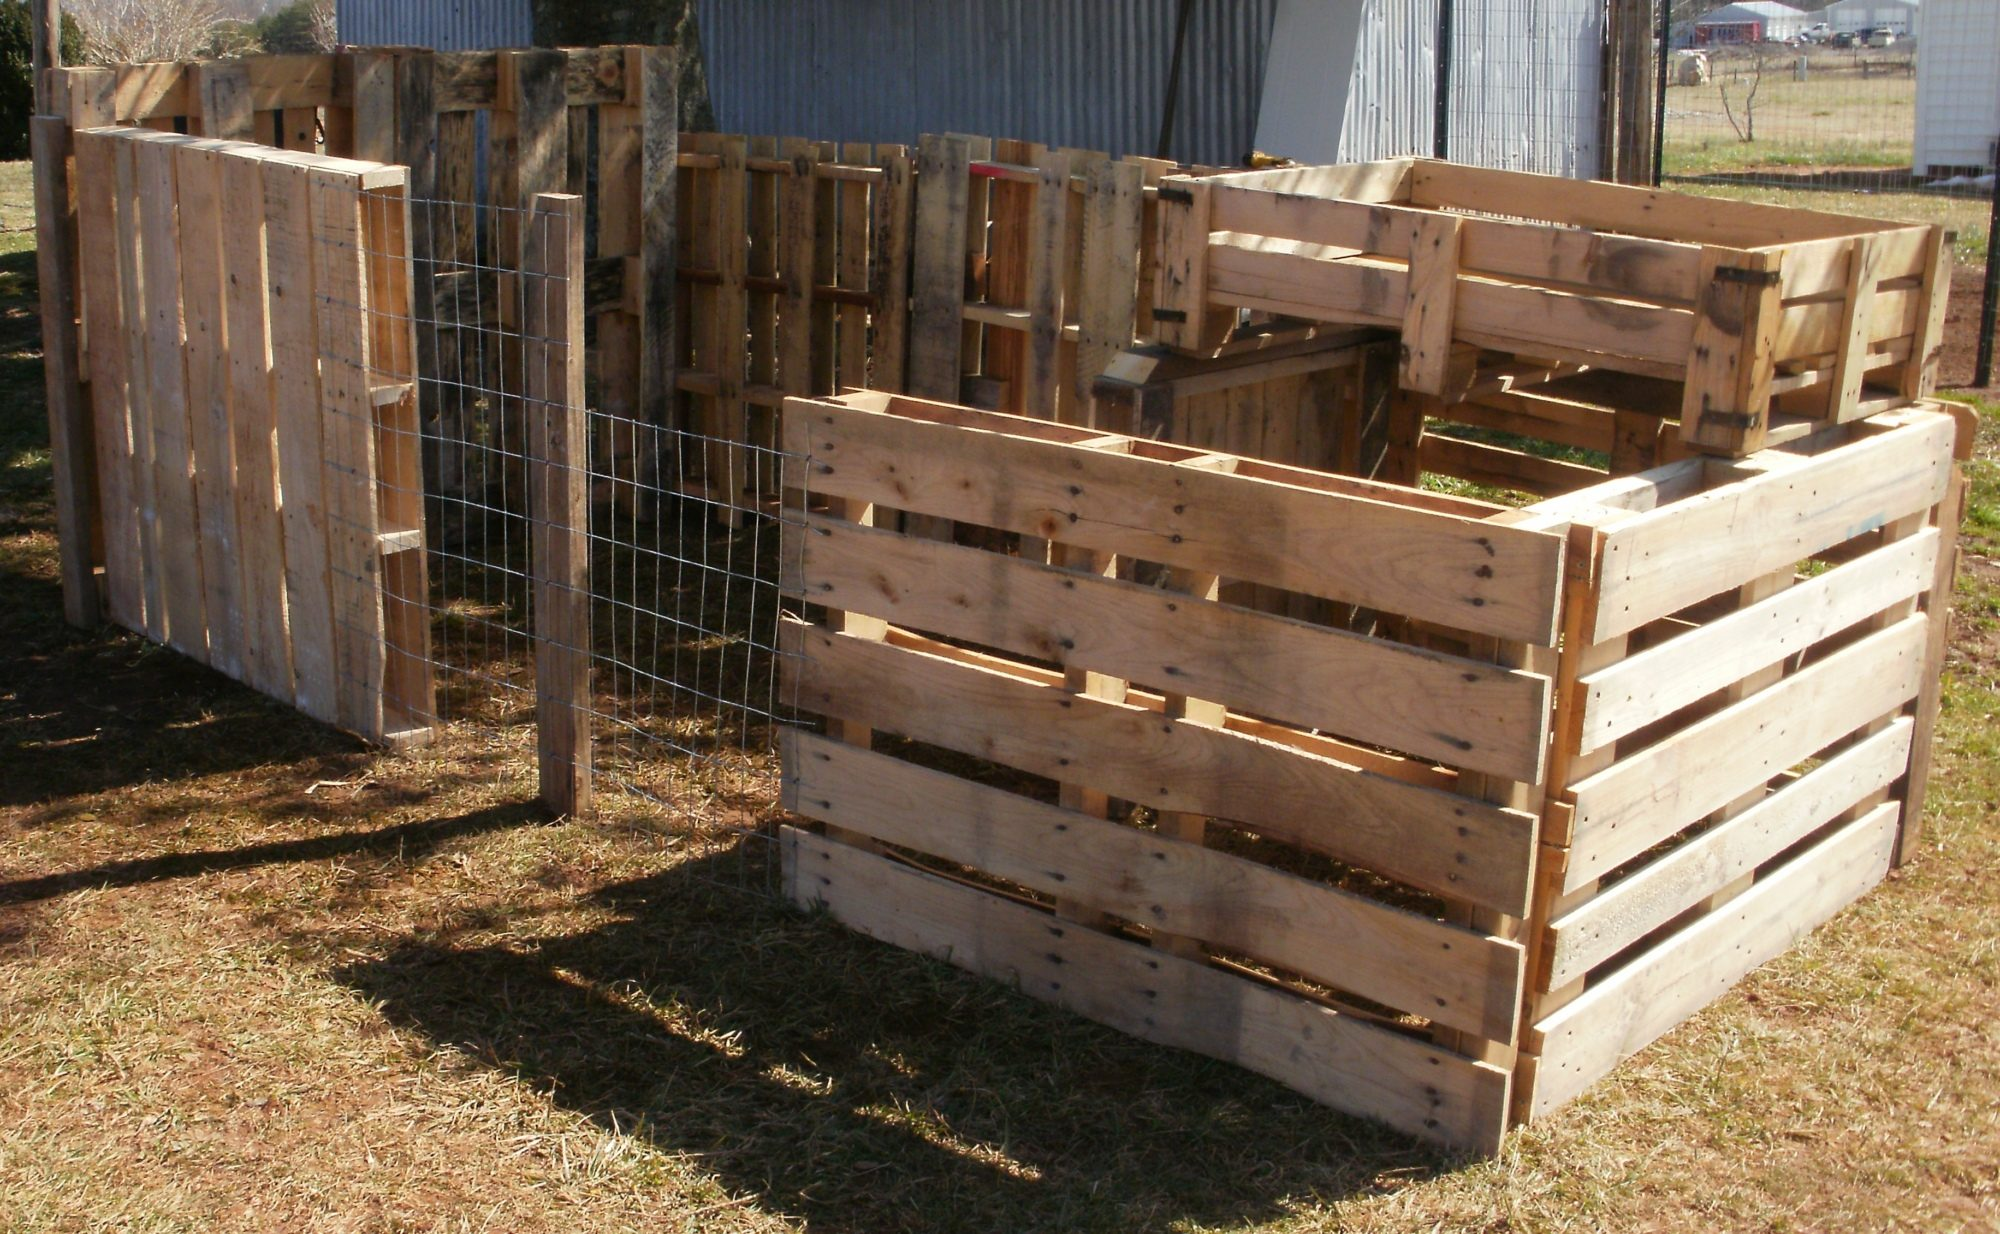 Pallet chicken coop backyard chickens community Chicken coop from pallet wood